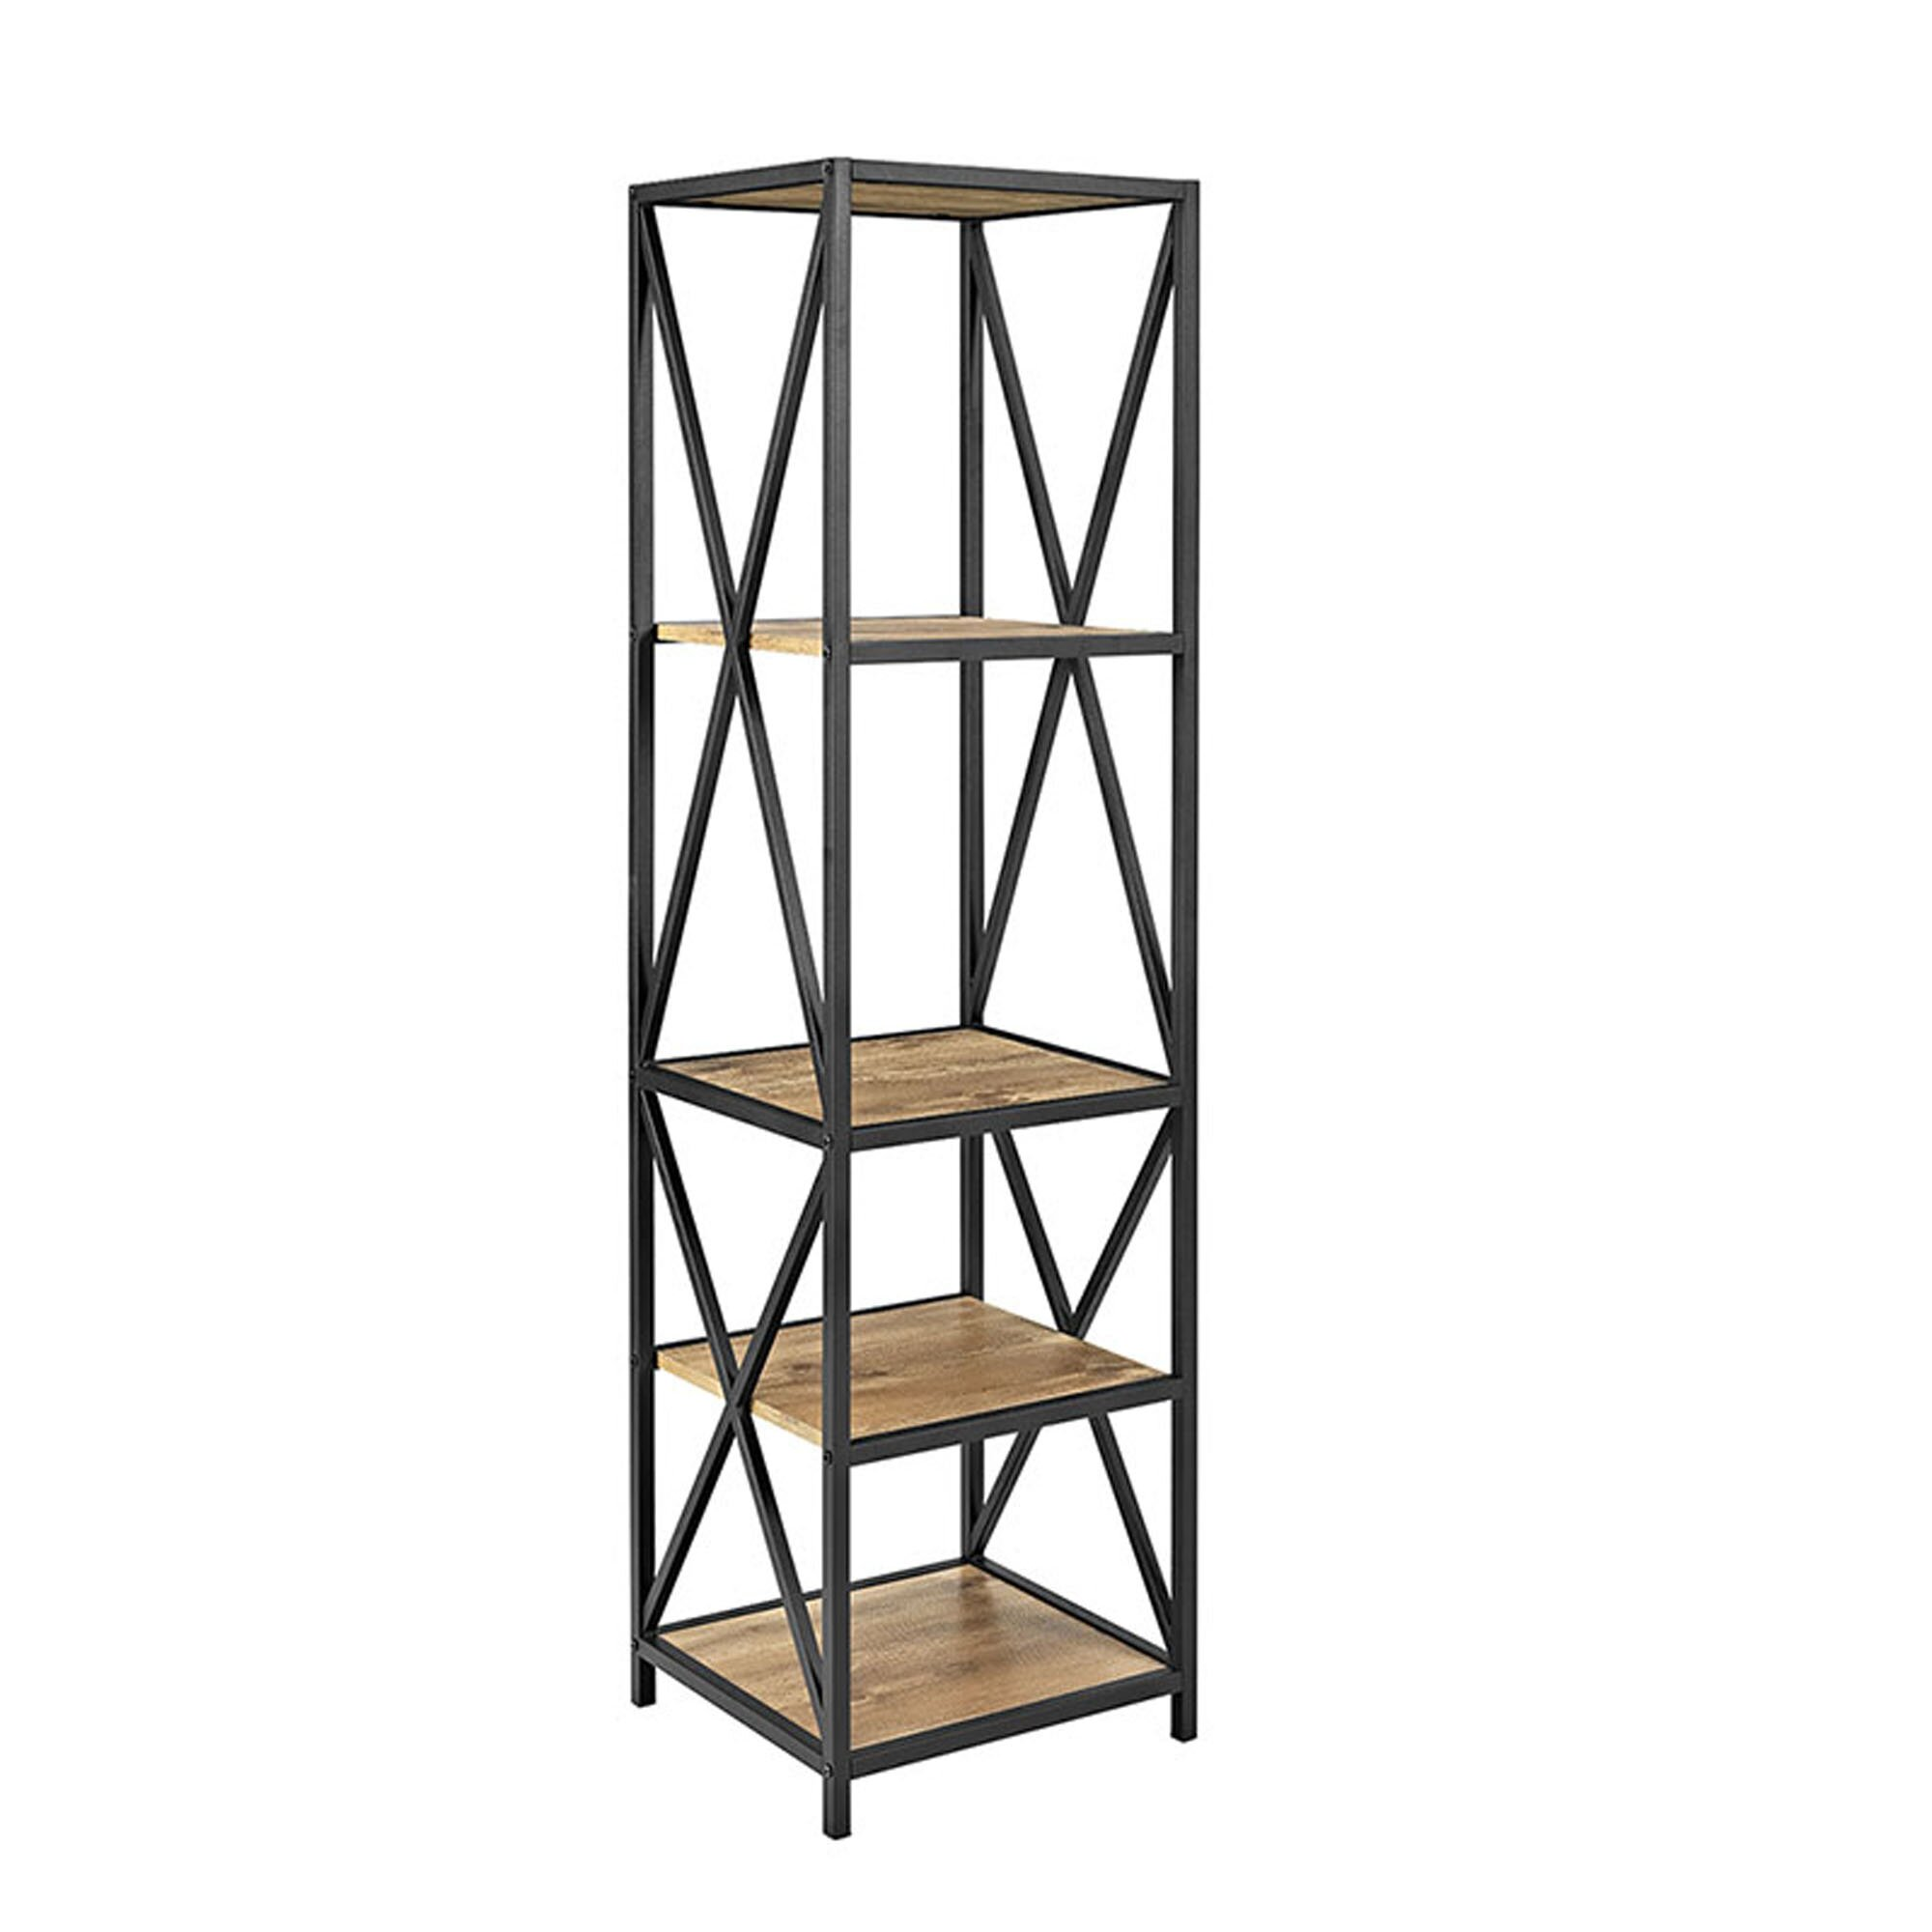 Trent austin design augustus x frame metal and wood media 61 etagere bookcase reviews wayfair - Etagere metal design ...